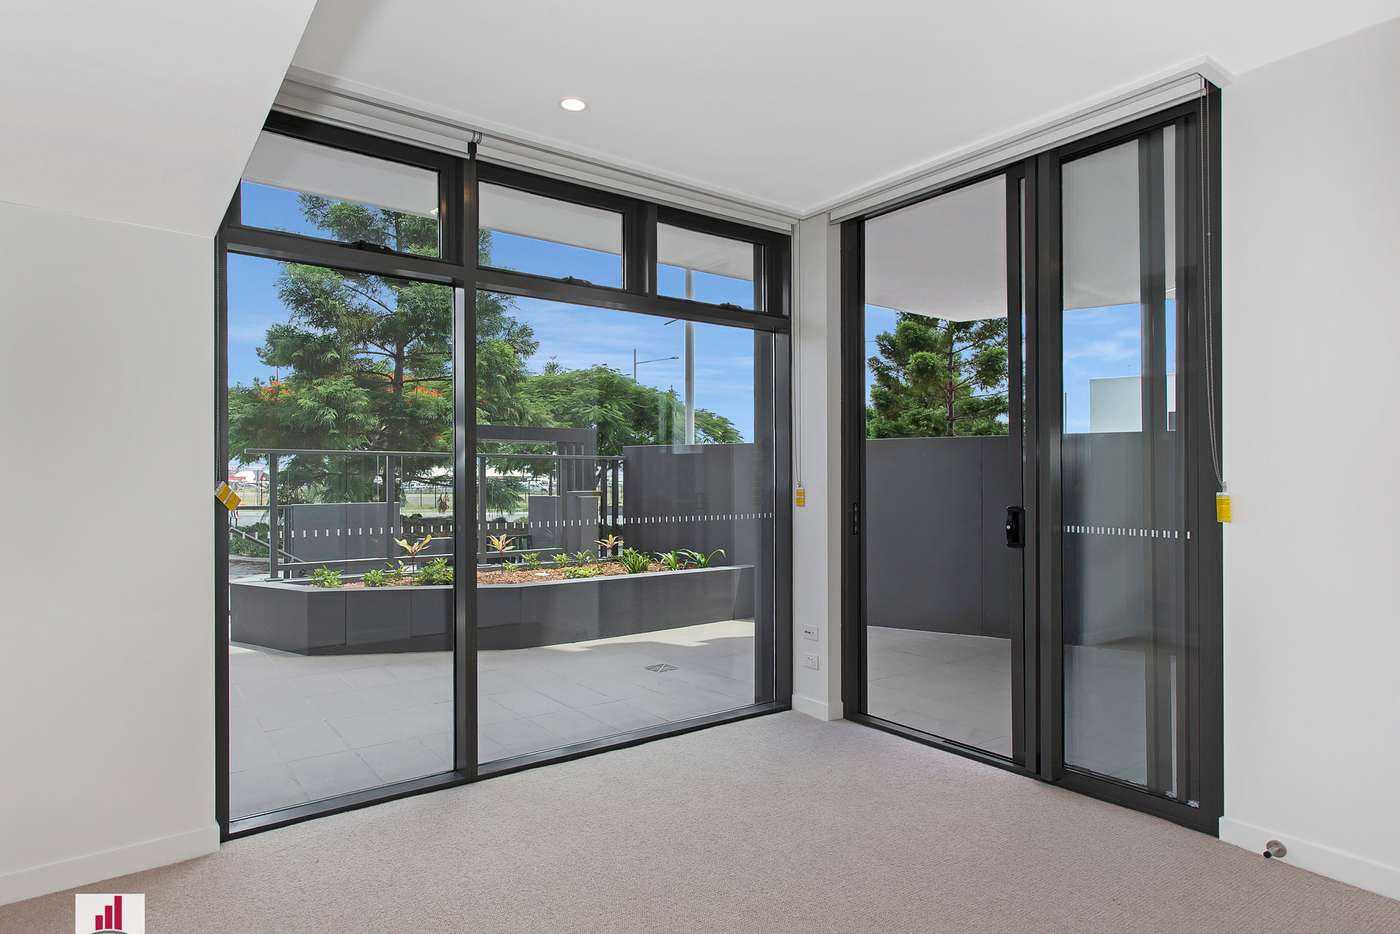 Fifth view of Homely apartment listing, 5106/331 MacArthur Avenue, Hamilton QLD 4007